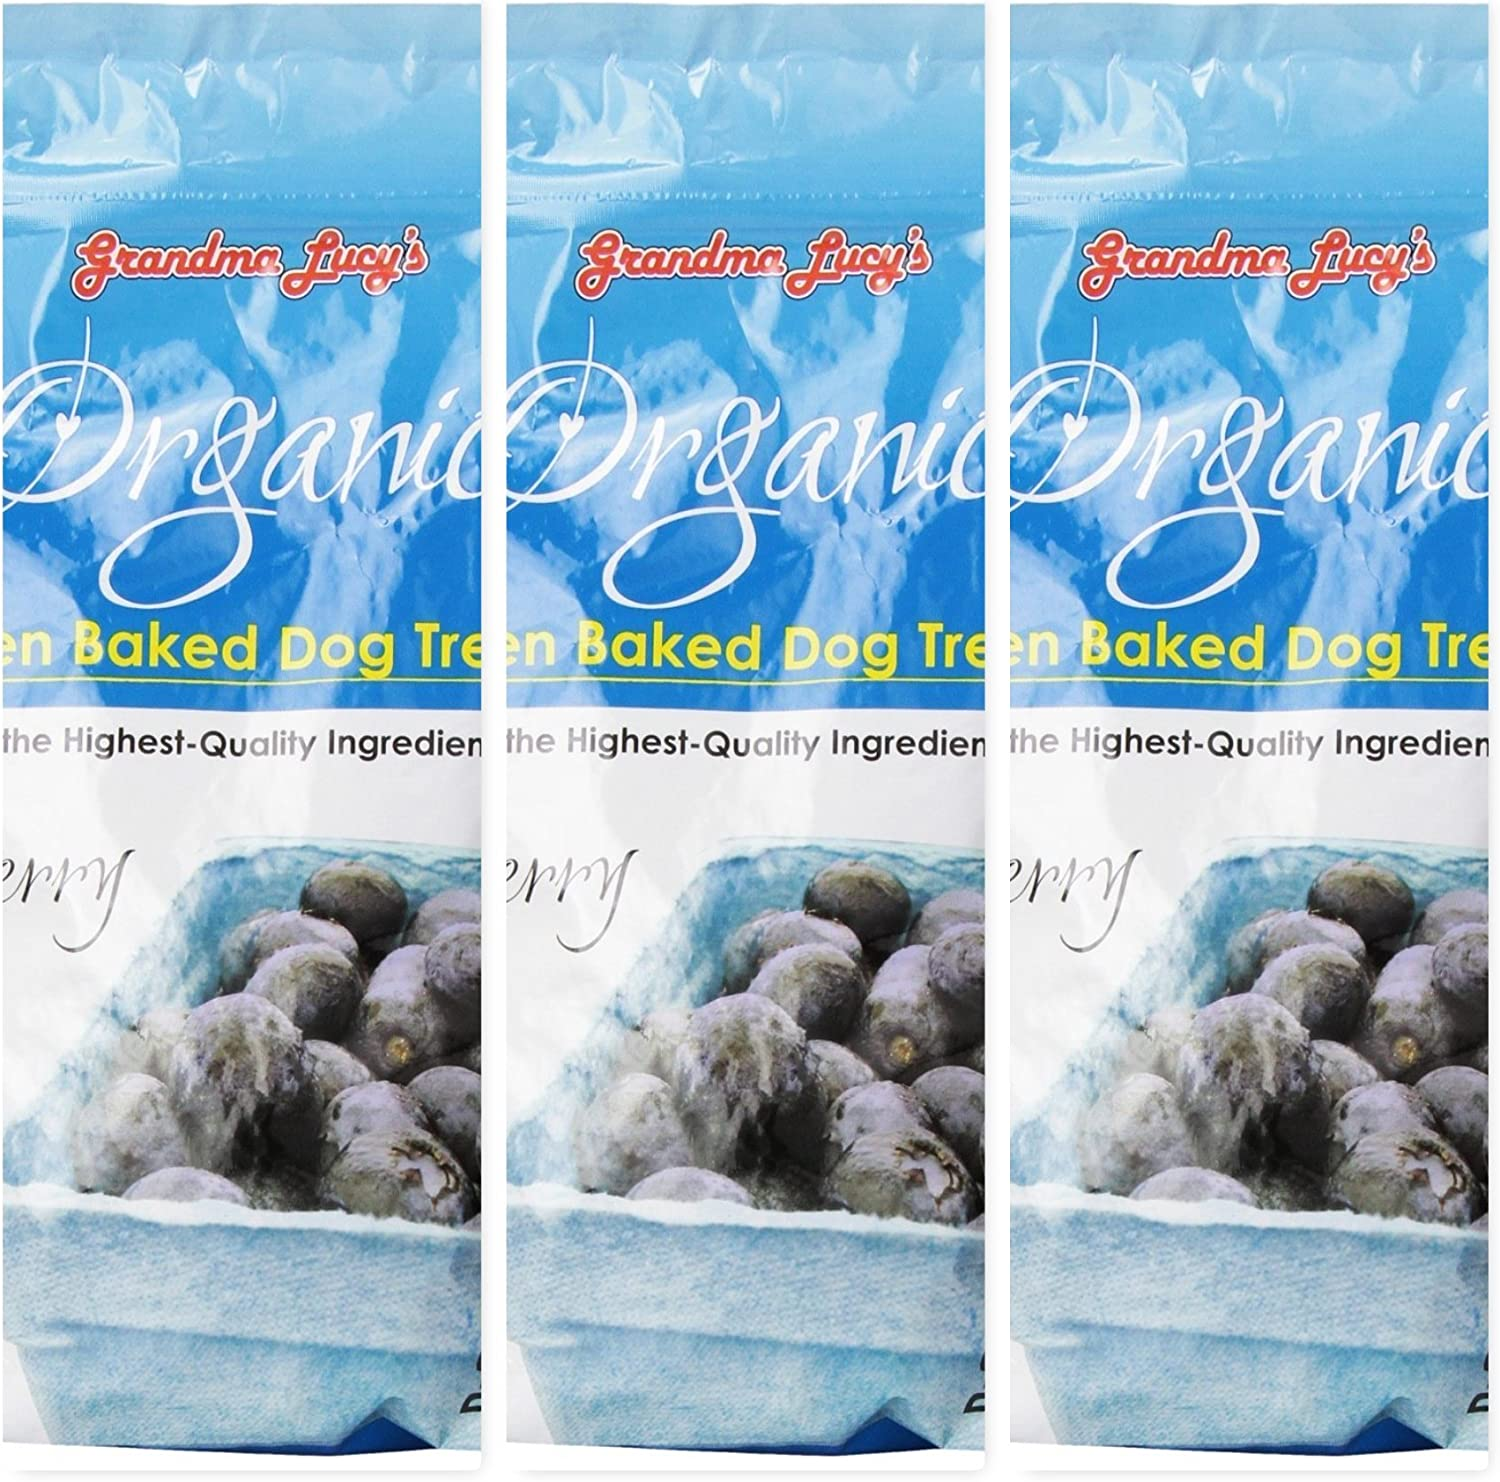 Grandma Lucy's (3 Pack) Organic Oven Baked Blueberry Dog Treats, 14 Ounces each, (Fast Free Delivery) by Just Jak's Pet Market